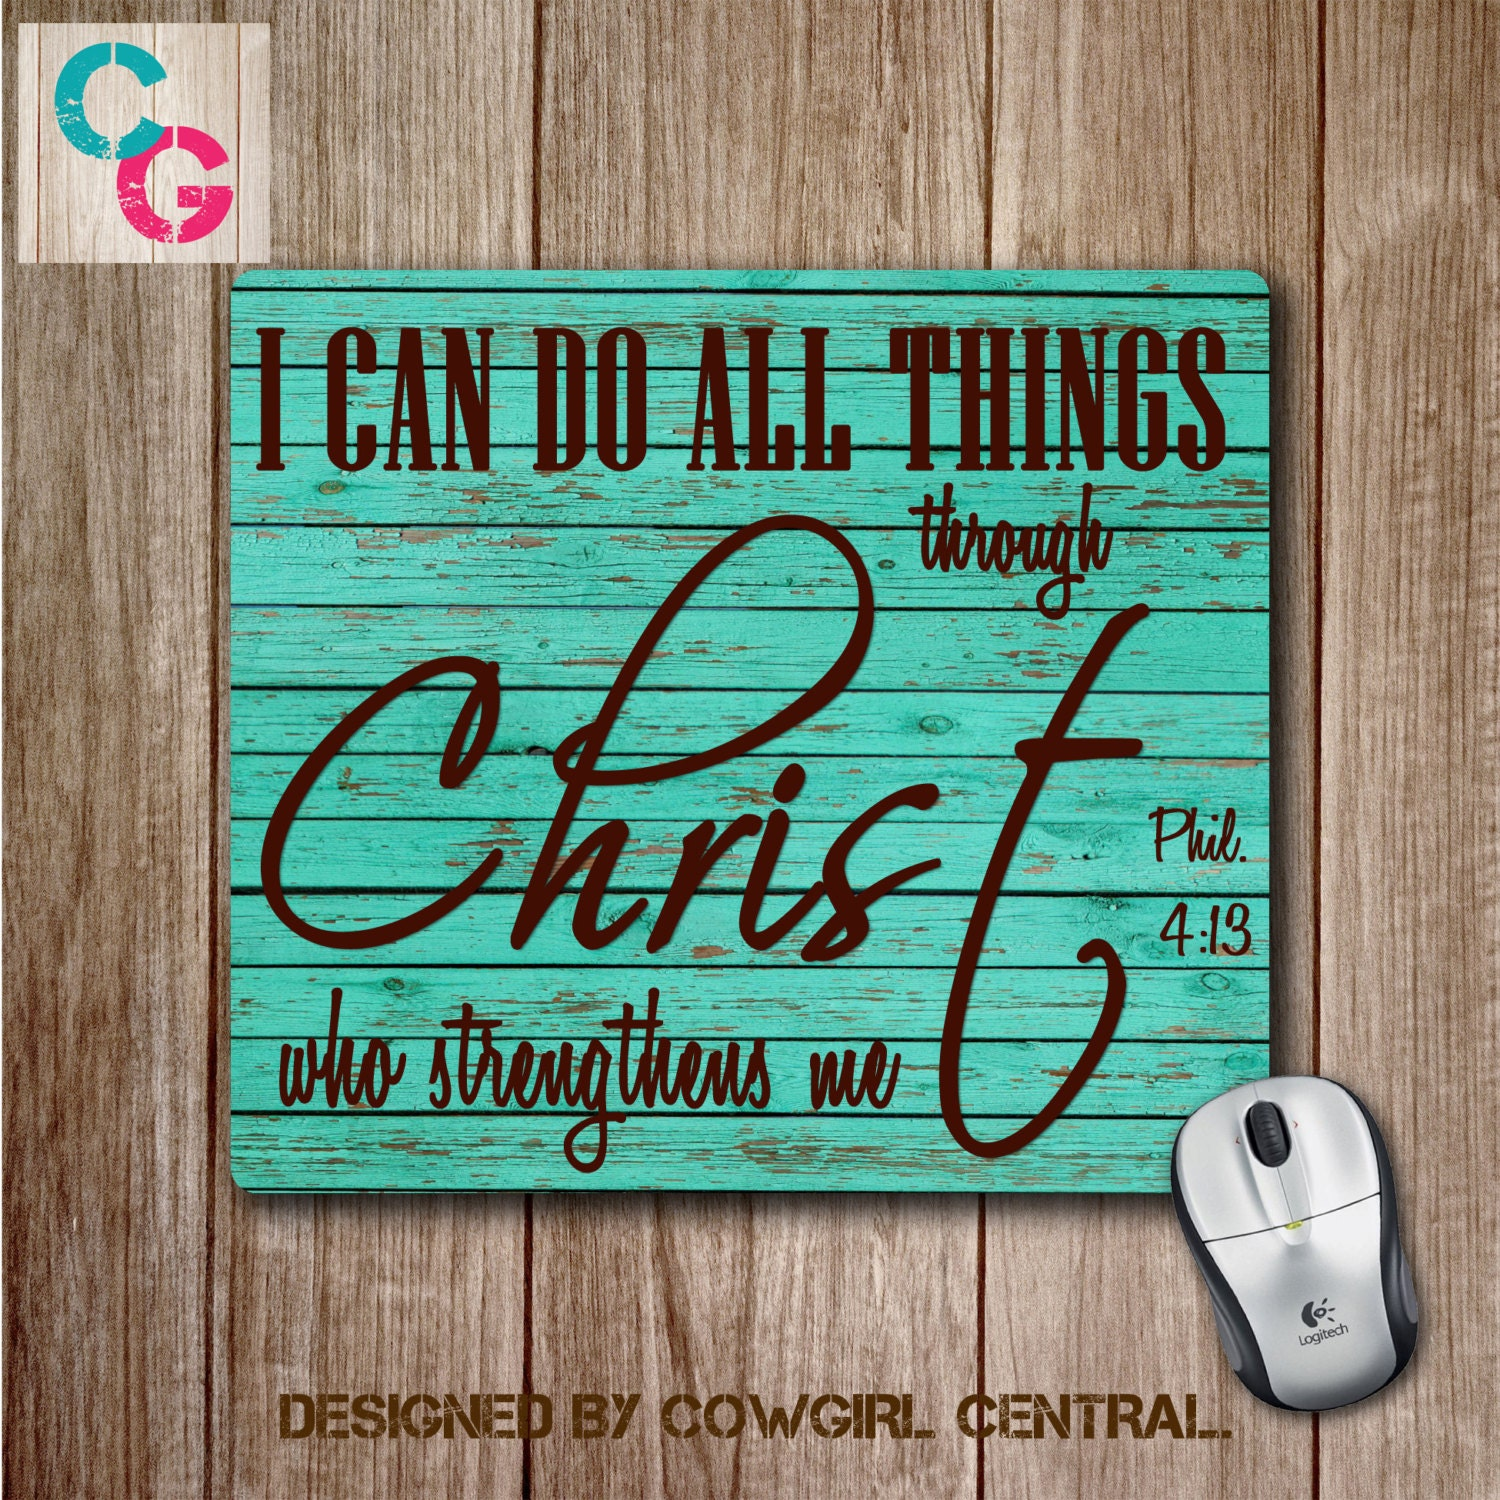 I Can Do All Things Through Christ Wallpaper: Mouse Pad I Can Do All Things Through Christ On Teal Wood